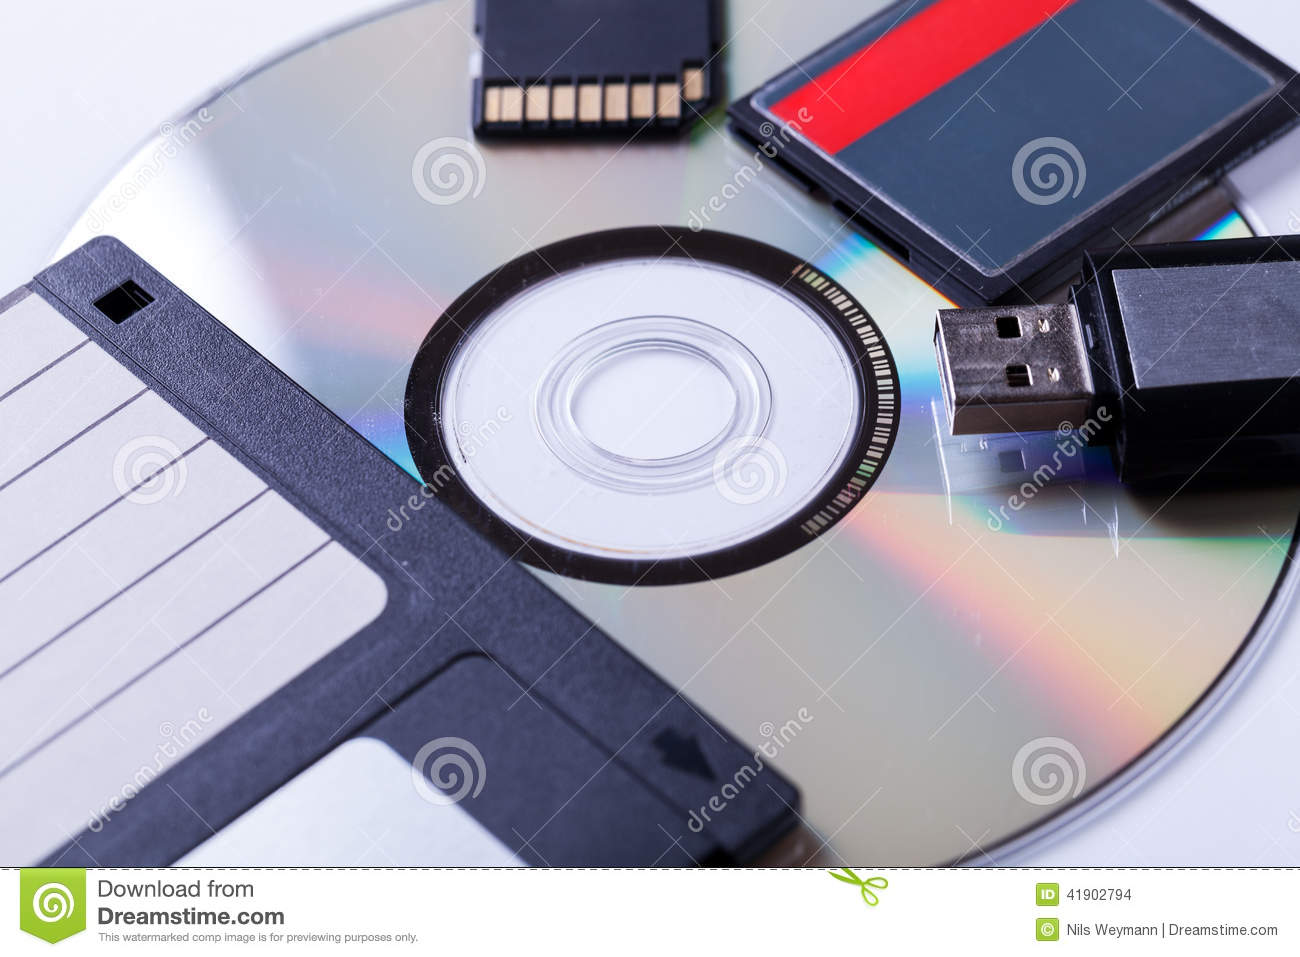 Http Www Dreamstime Com Stock Photo Selection Different Computer Storage Devices Data Information Including Cd Dvd Floppy Disc Usb Key Compact Flash Card Image41902794